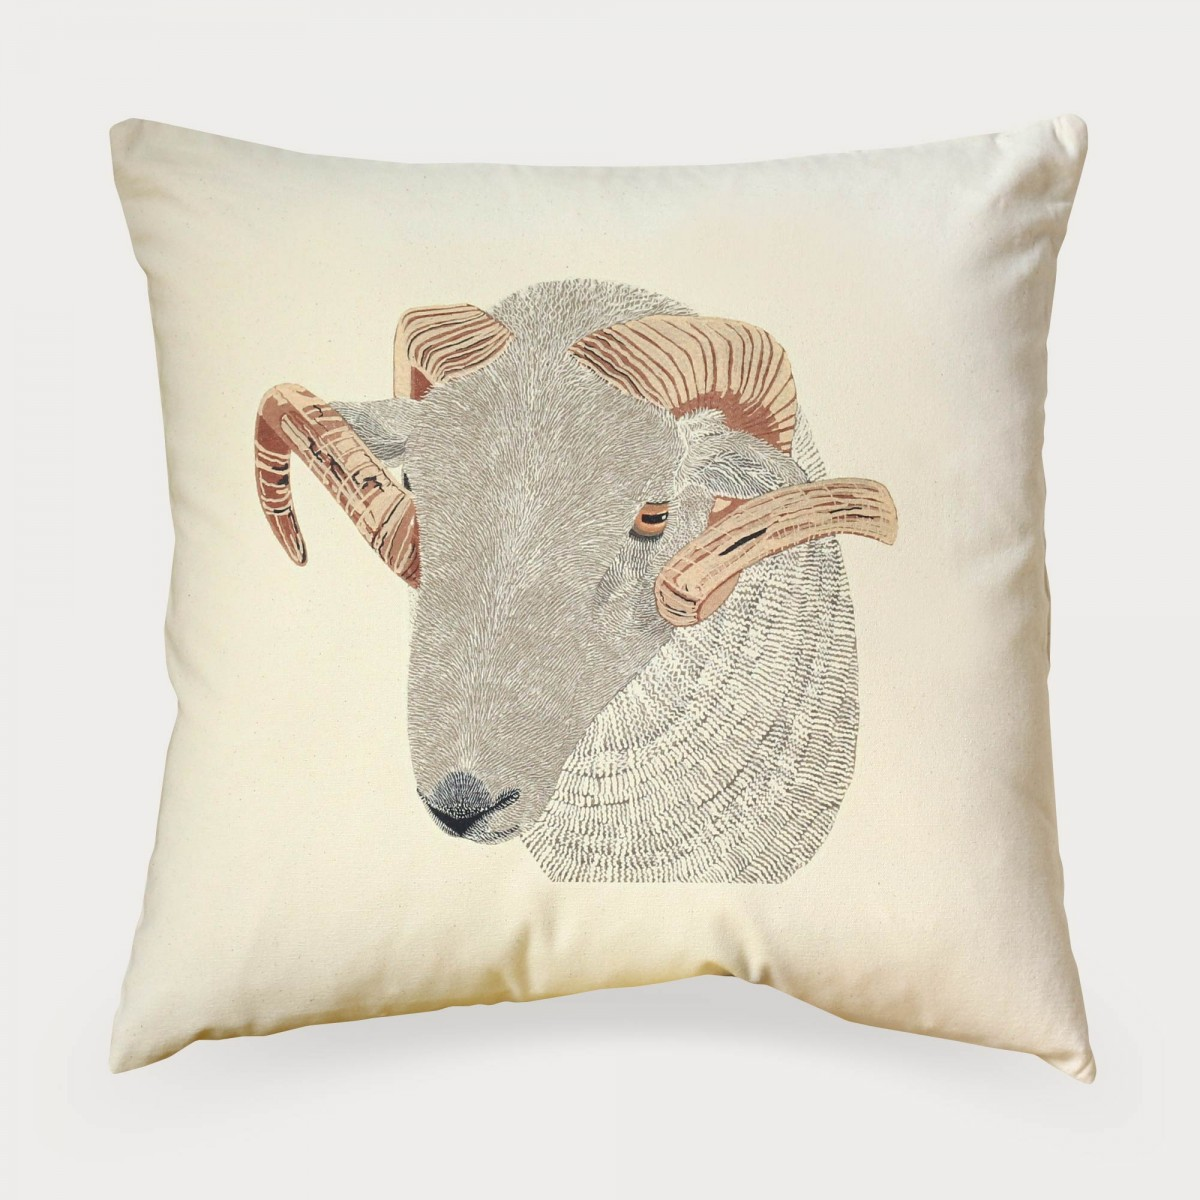 Ram Tup Sheep Print Cushion Cover